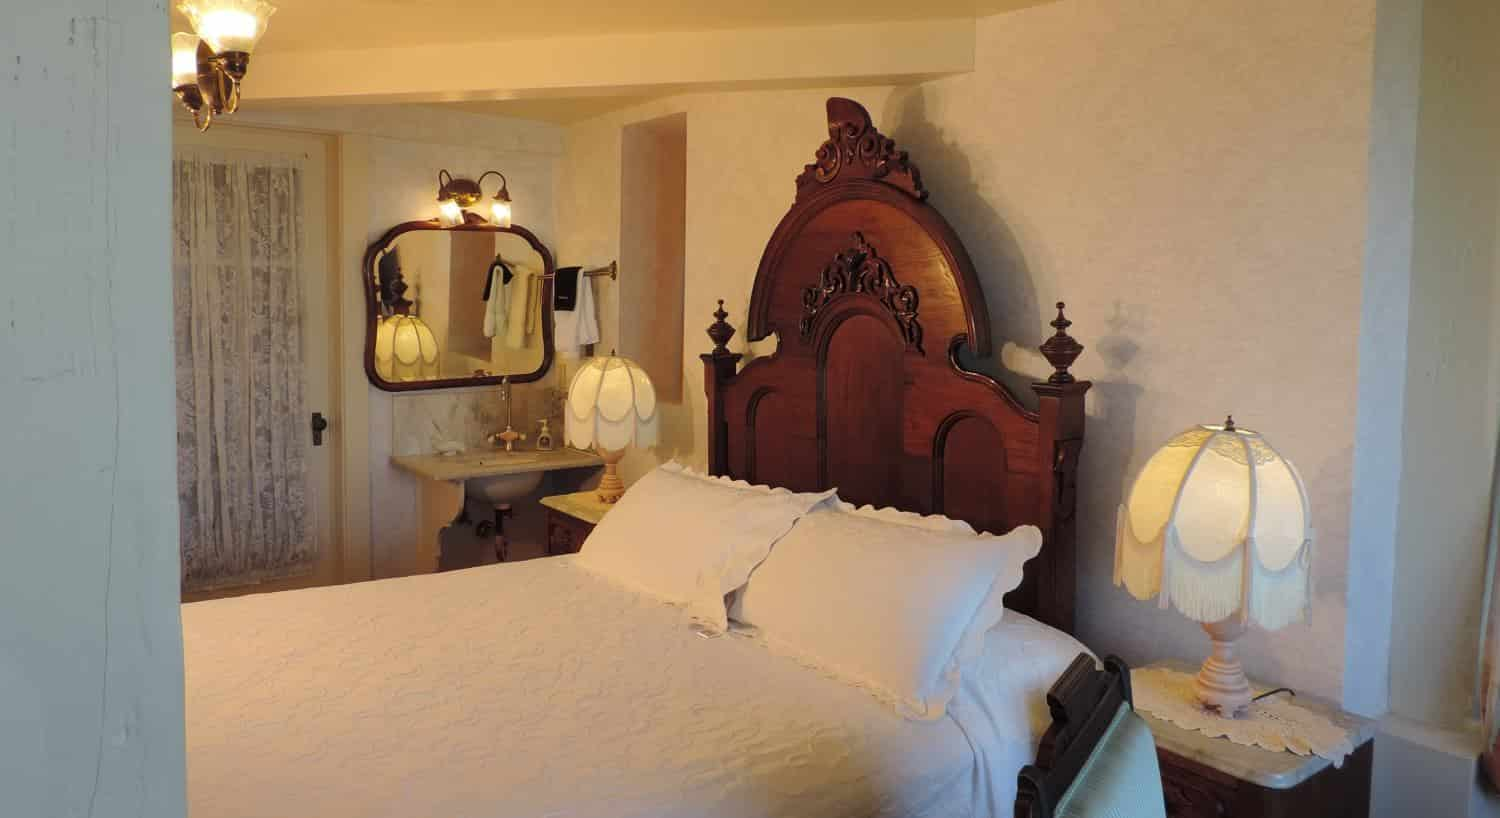 Victoriana guest room with tall carved headboard, white bedding, nightstands with fringed lamps and wash basin with mirror